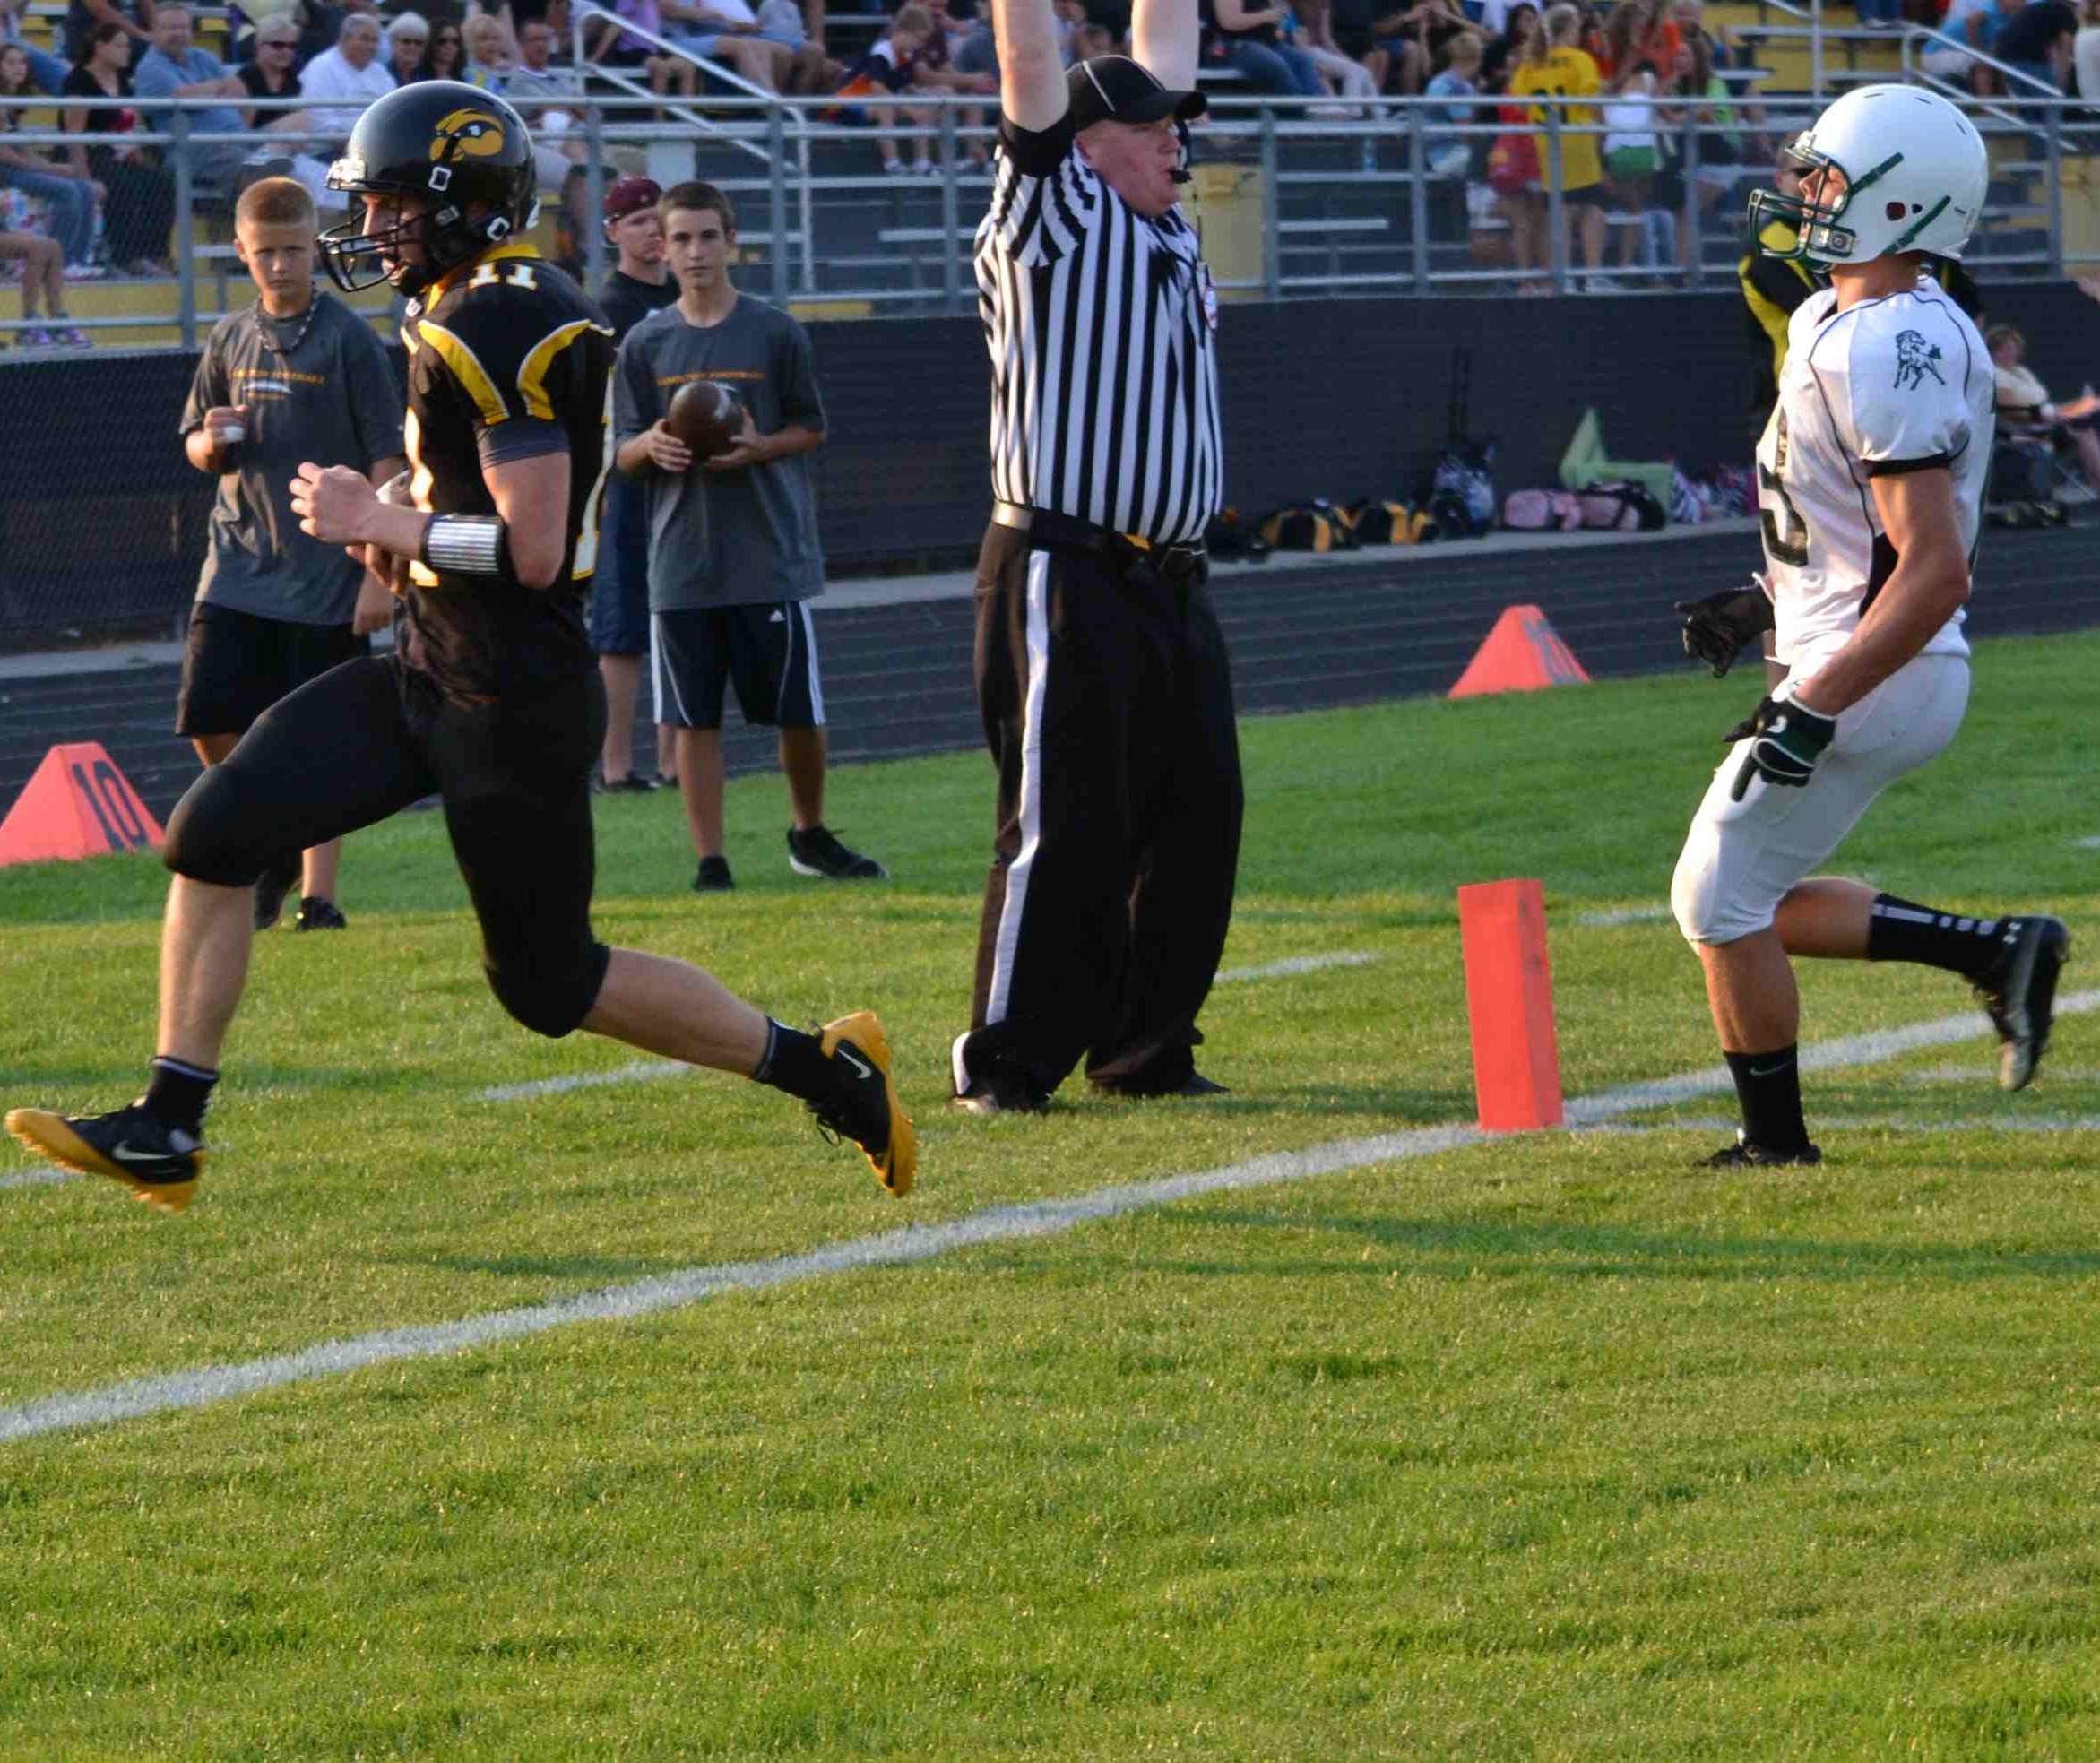 Nick Kronemeyer runs into the endzone untouched for the Hawkeyes first score.